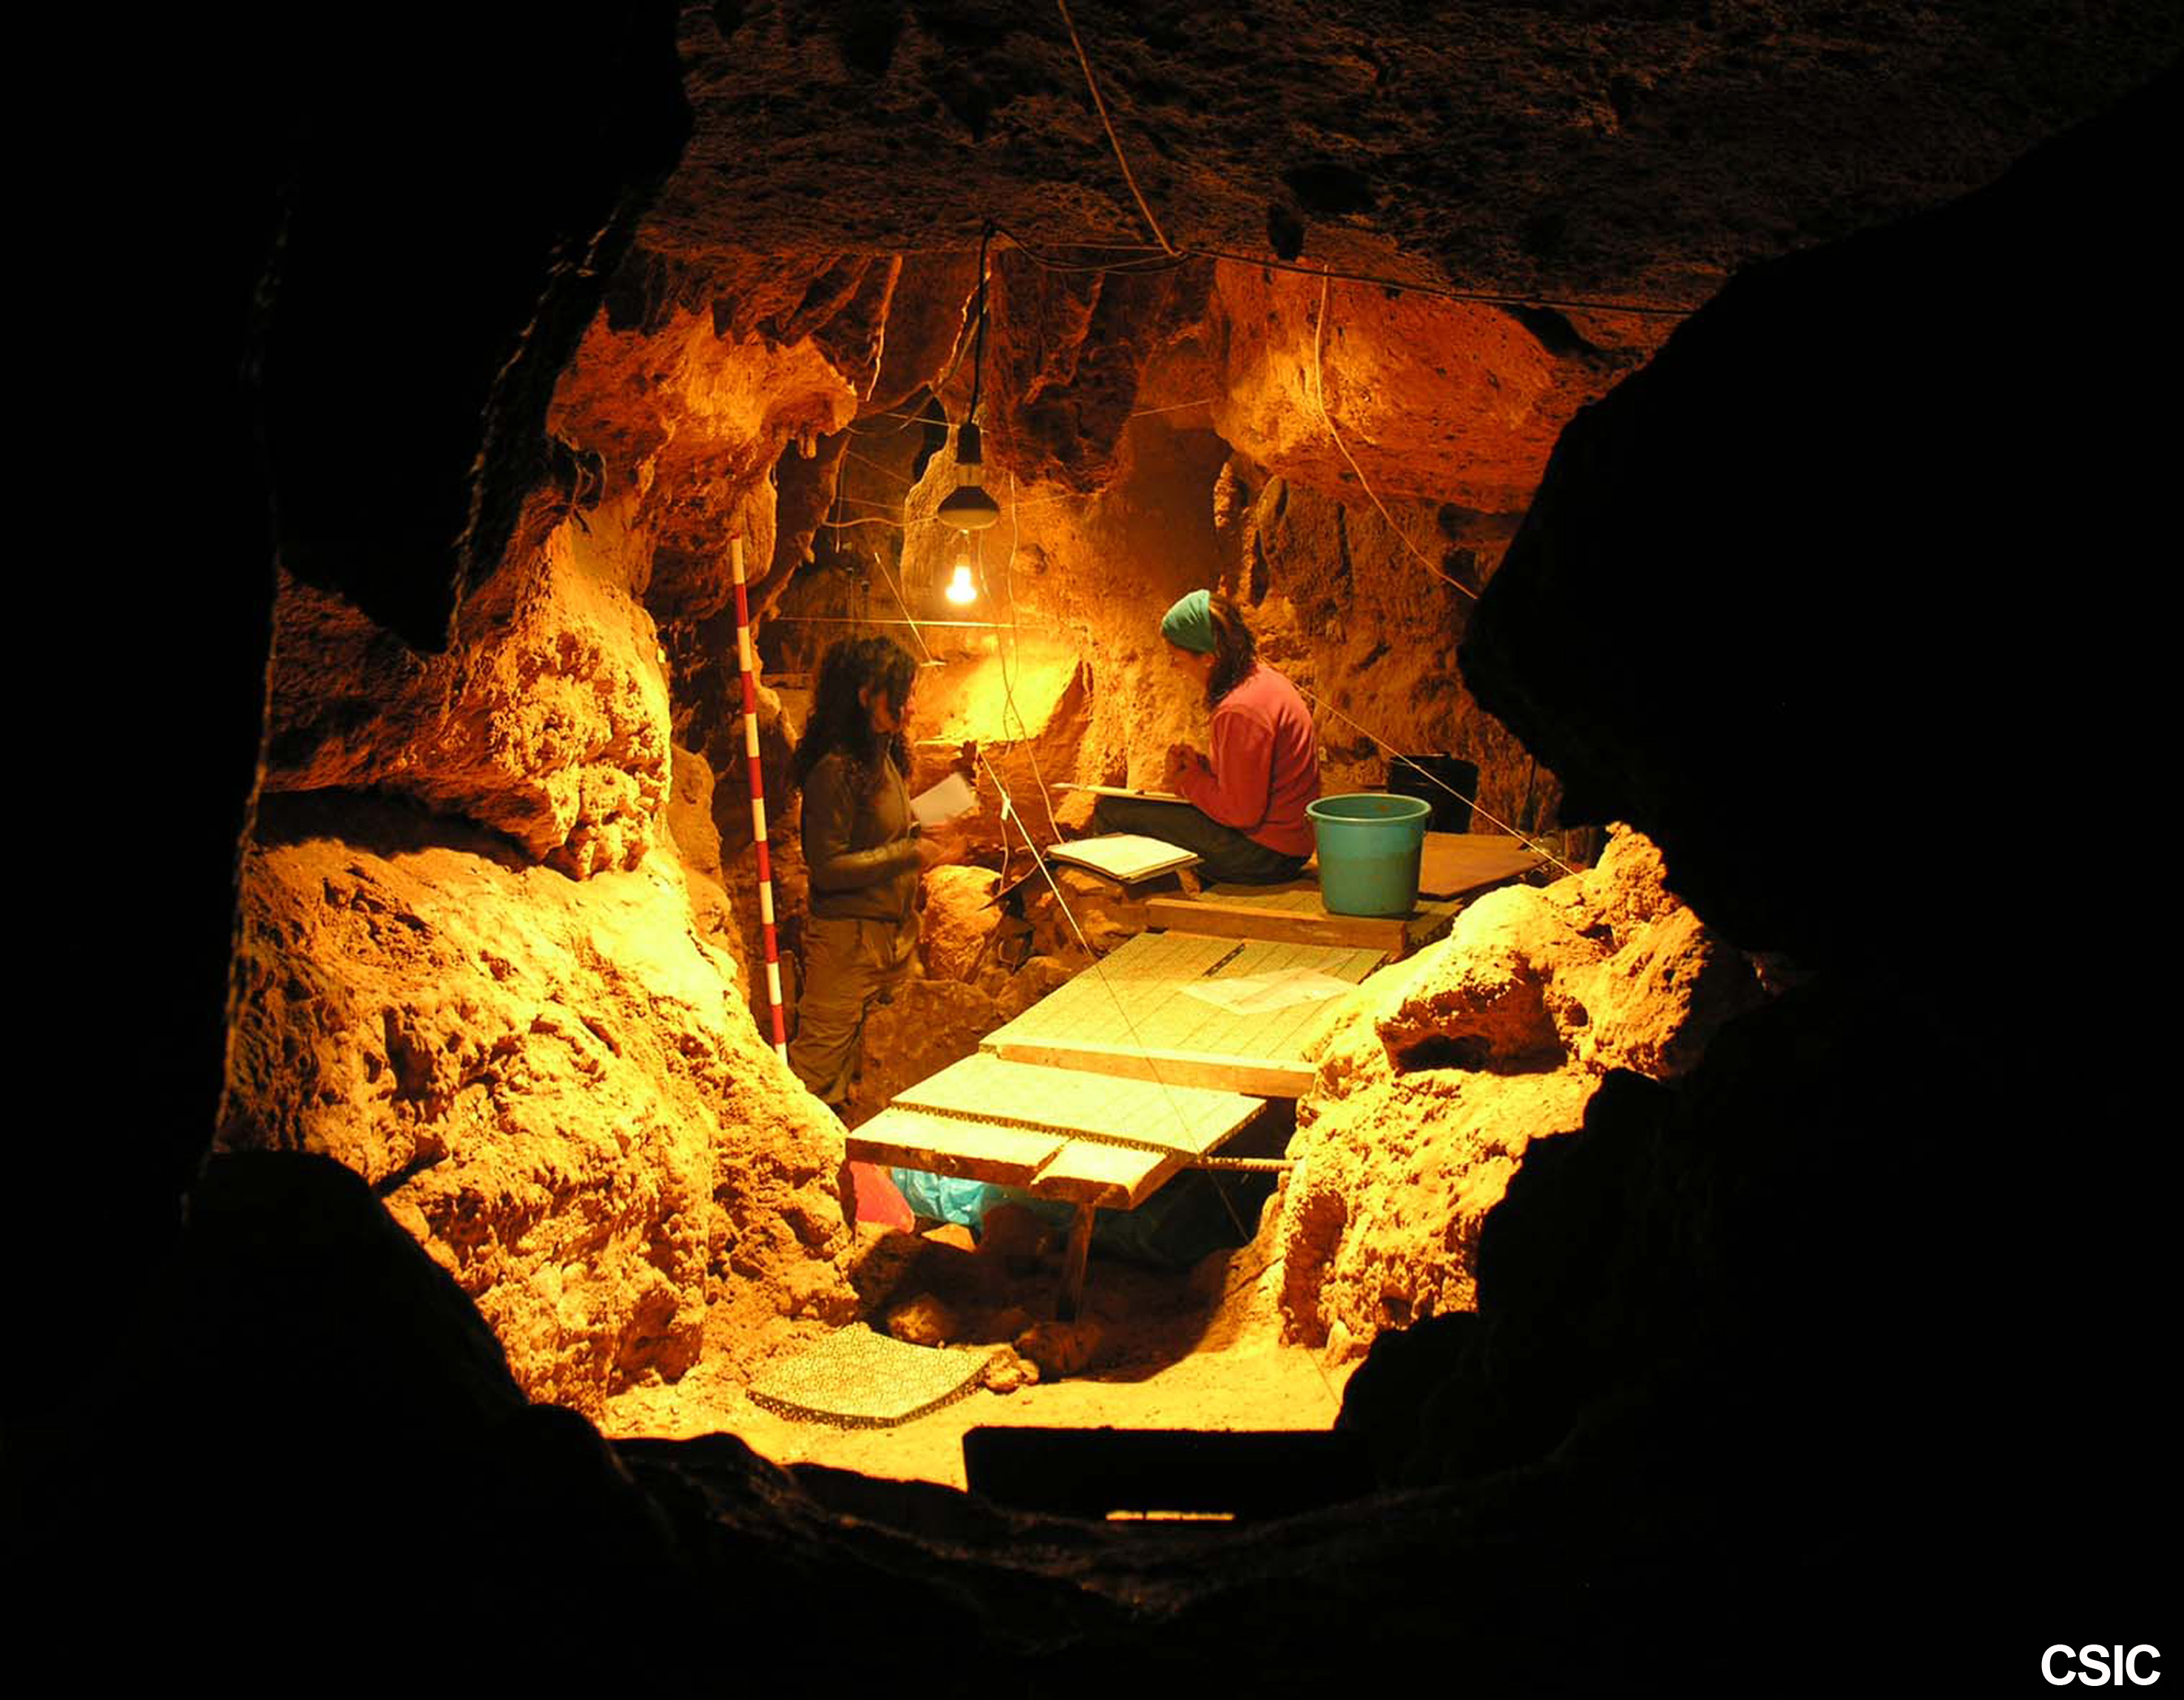 Image: Researchers working in El Sidrón Cave. Credit: CSIC Comunicación